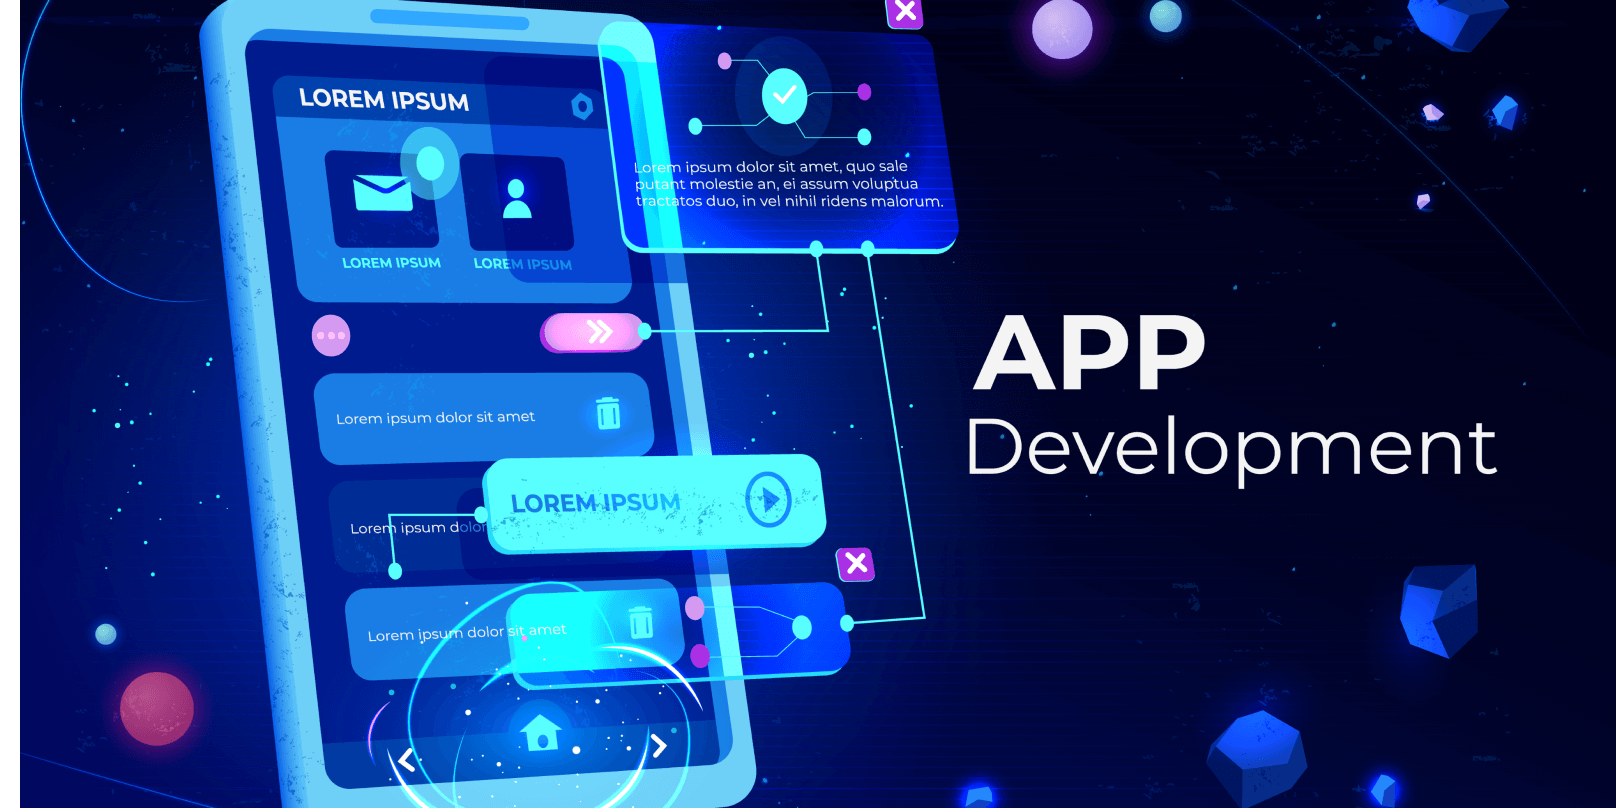 I will be your mobile app developer for android and IOS